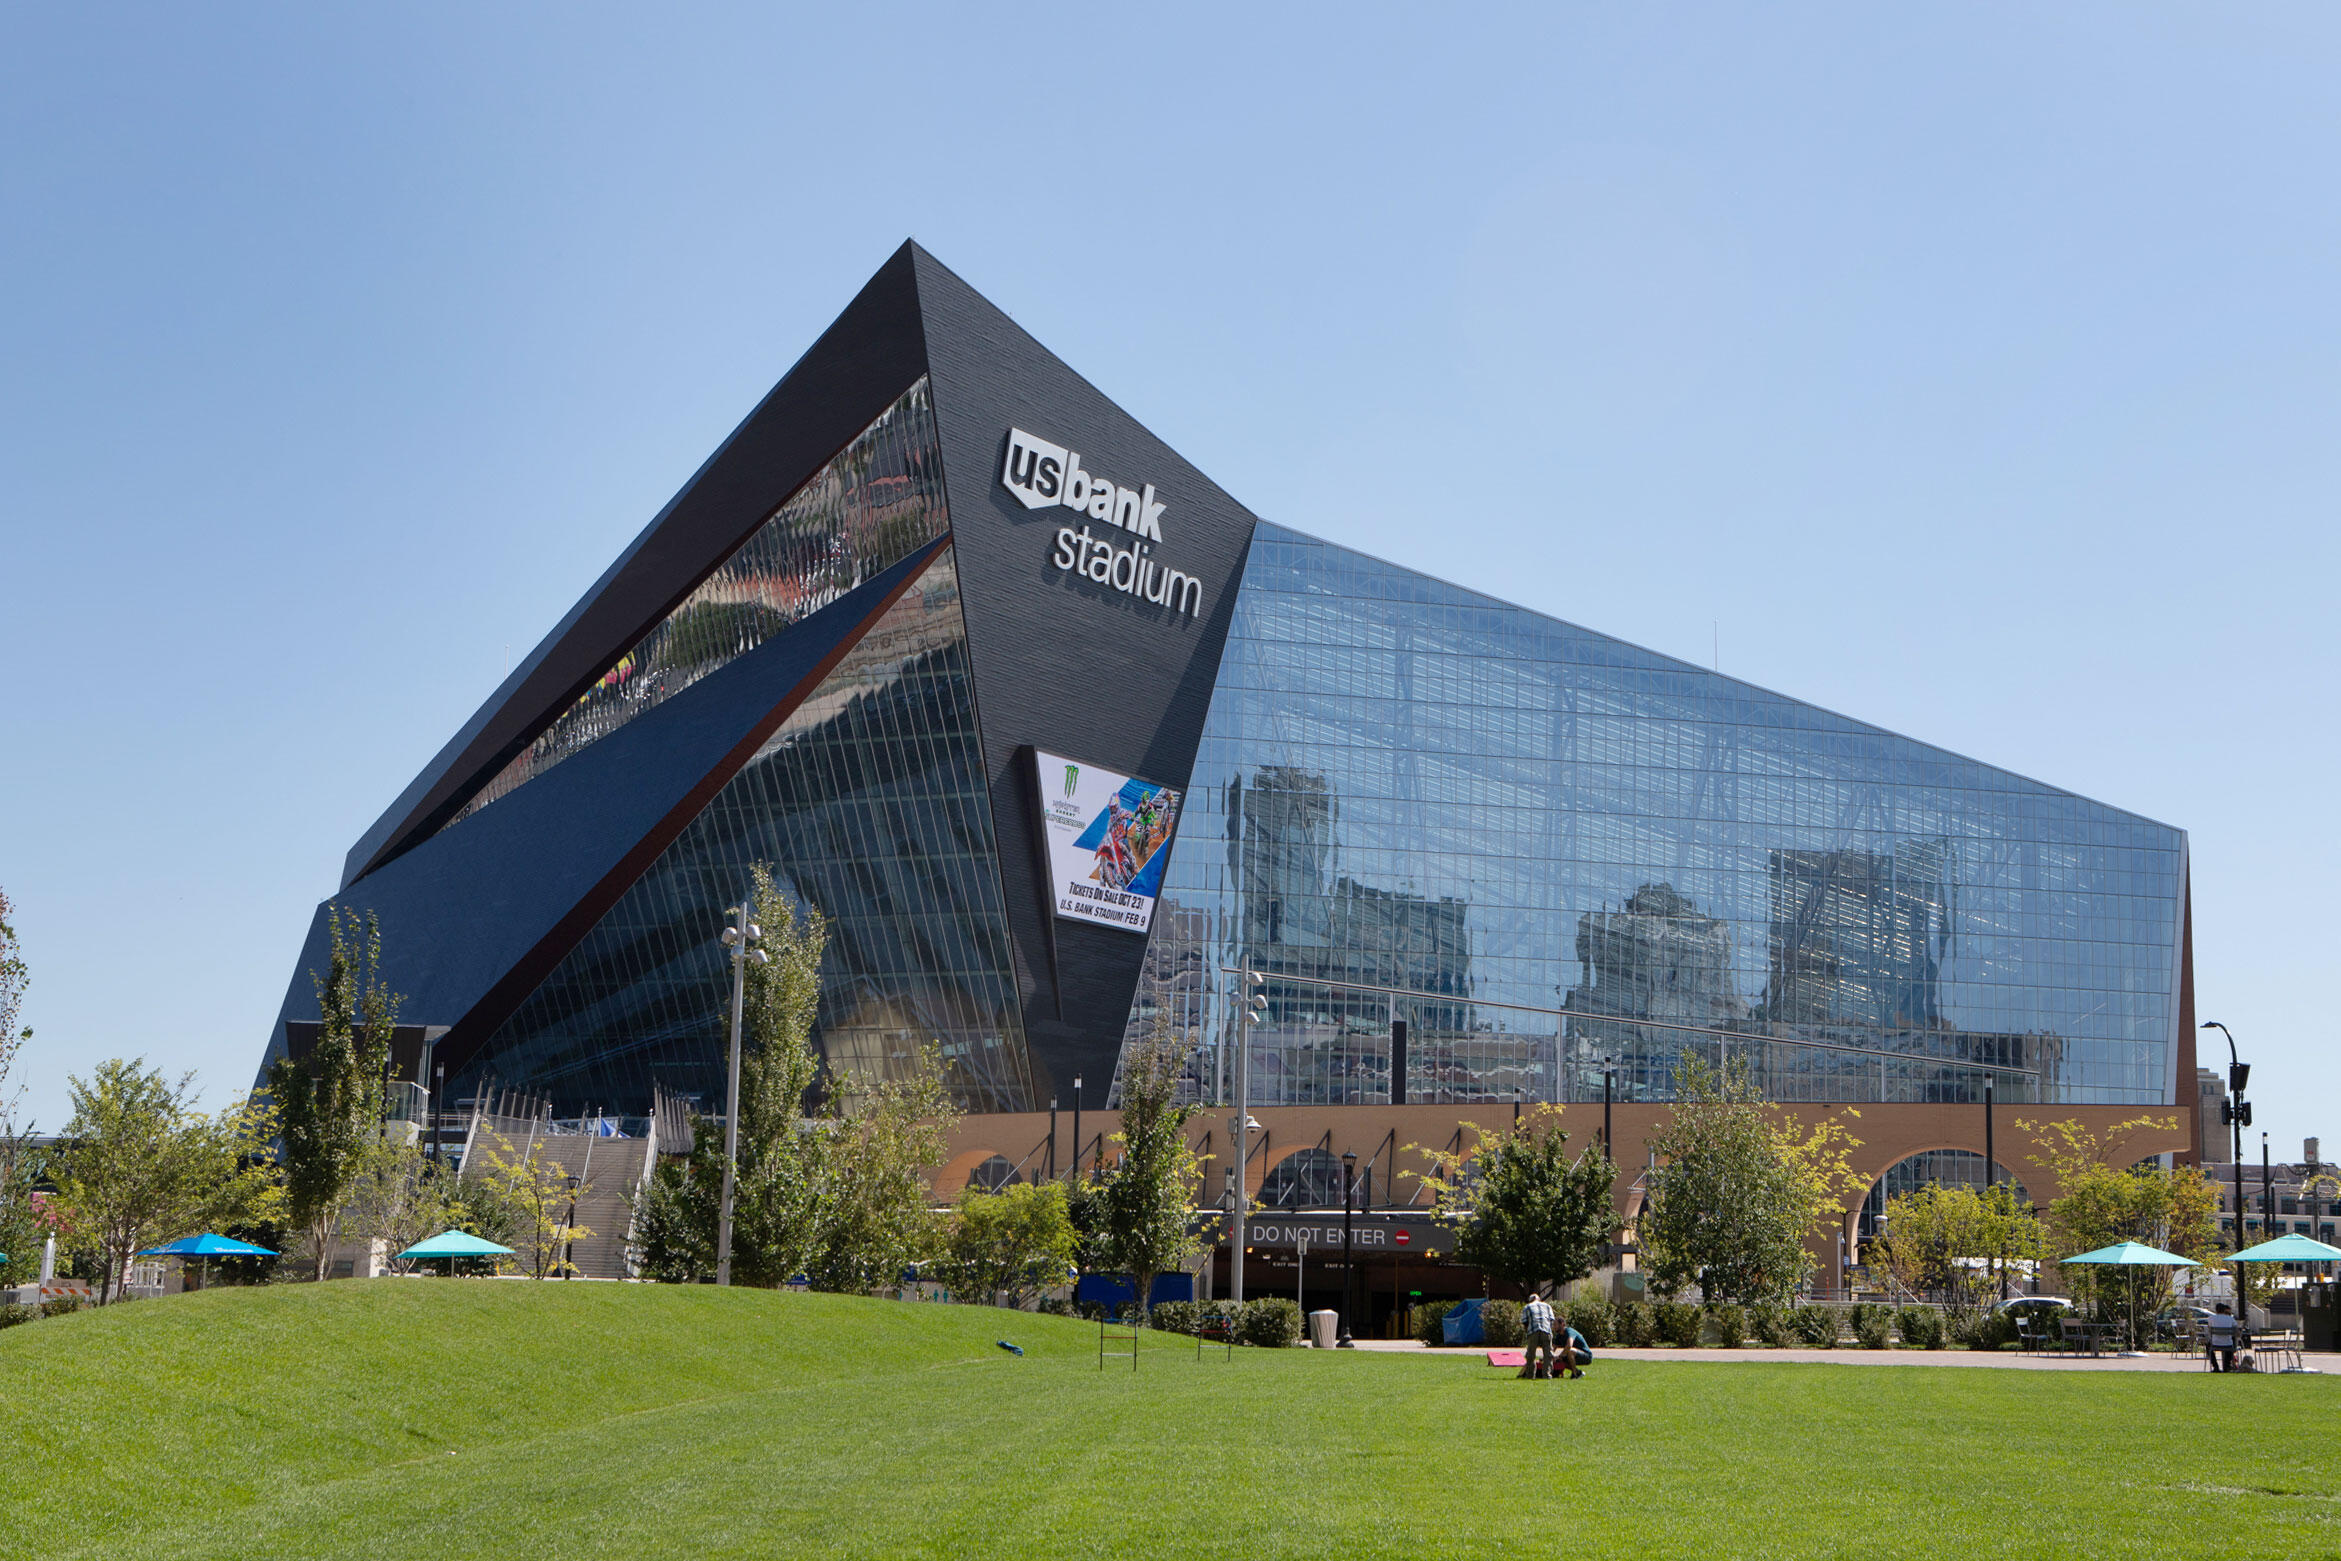 In addition to mirroring the sky, the windows of U.S. Bank Stadium also reflect nearby vegetation. Birds that are foraging may fly into the illusion of trees. Camilla Cerea/Audubon